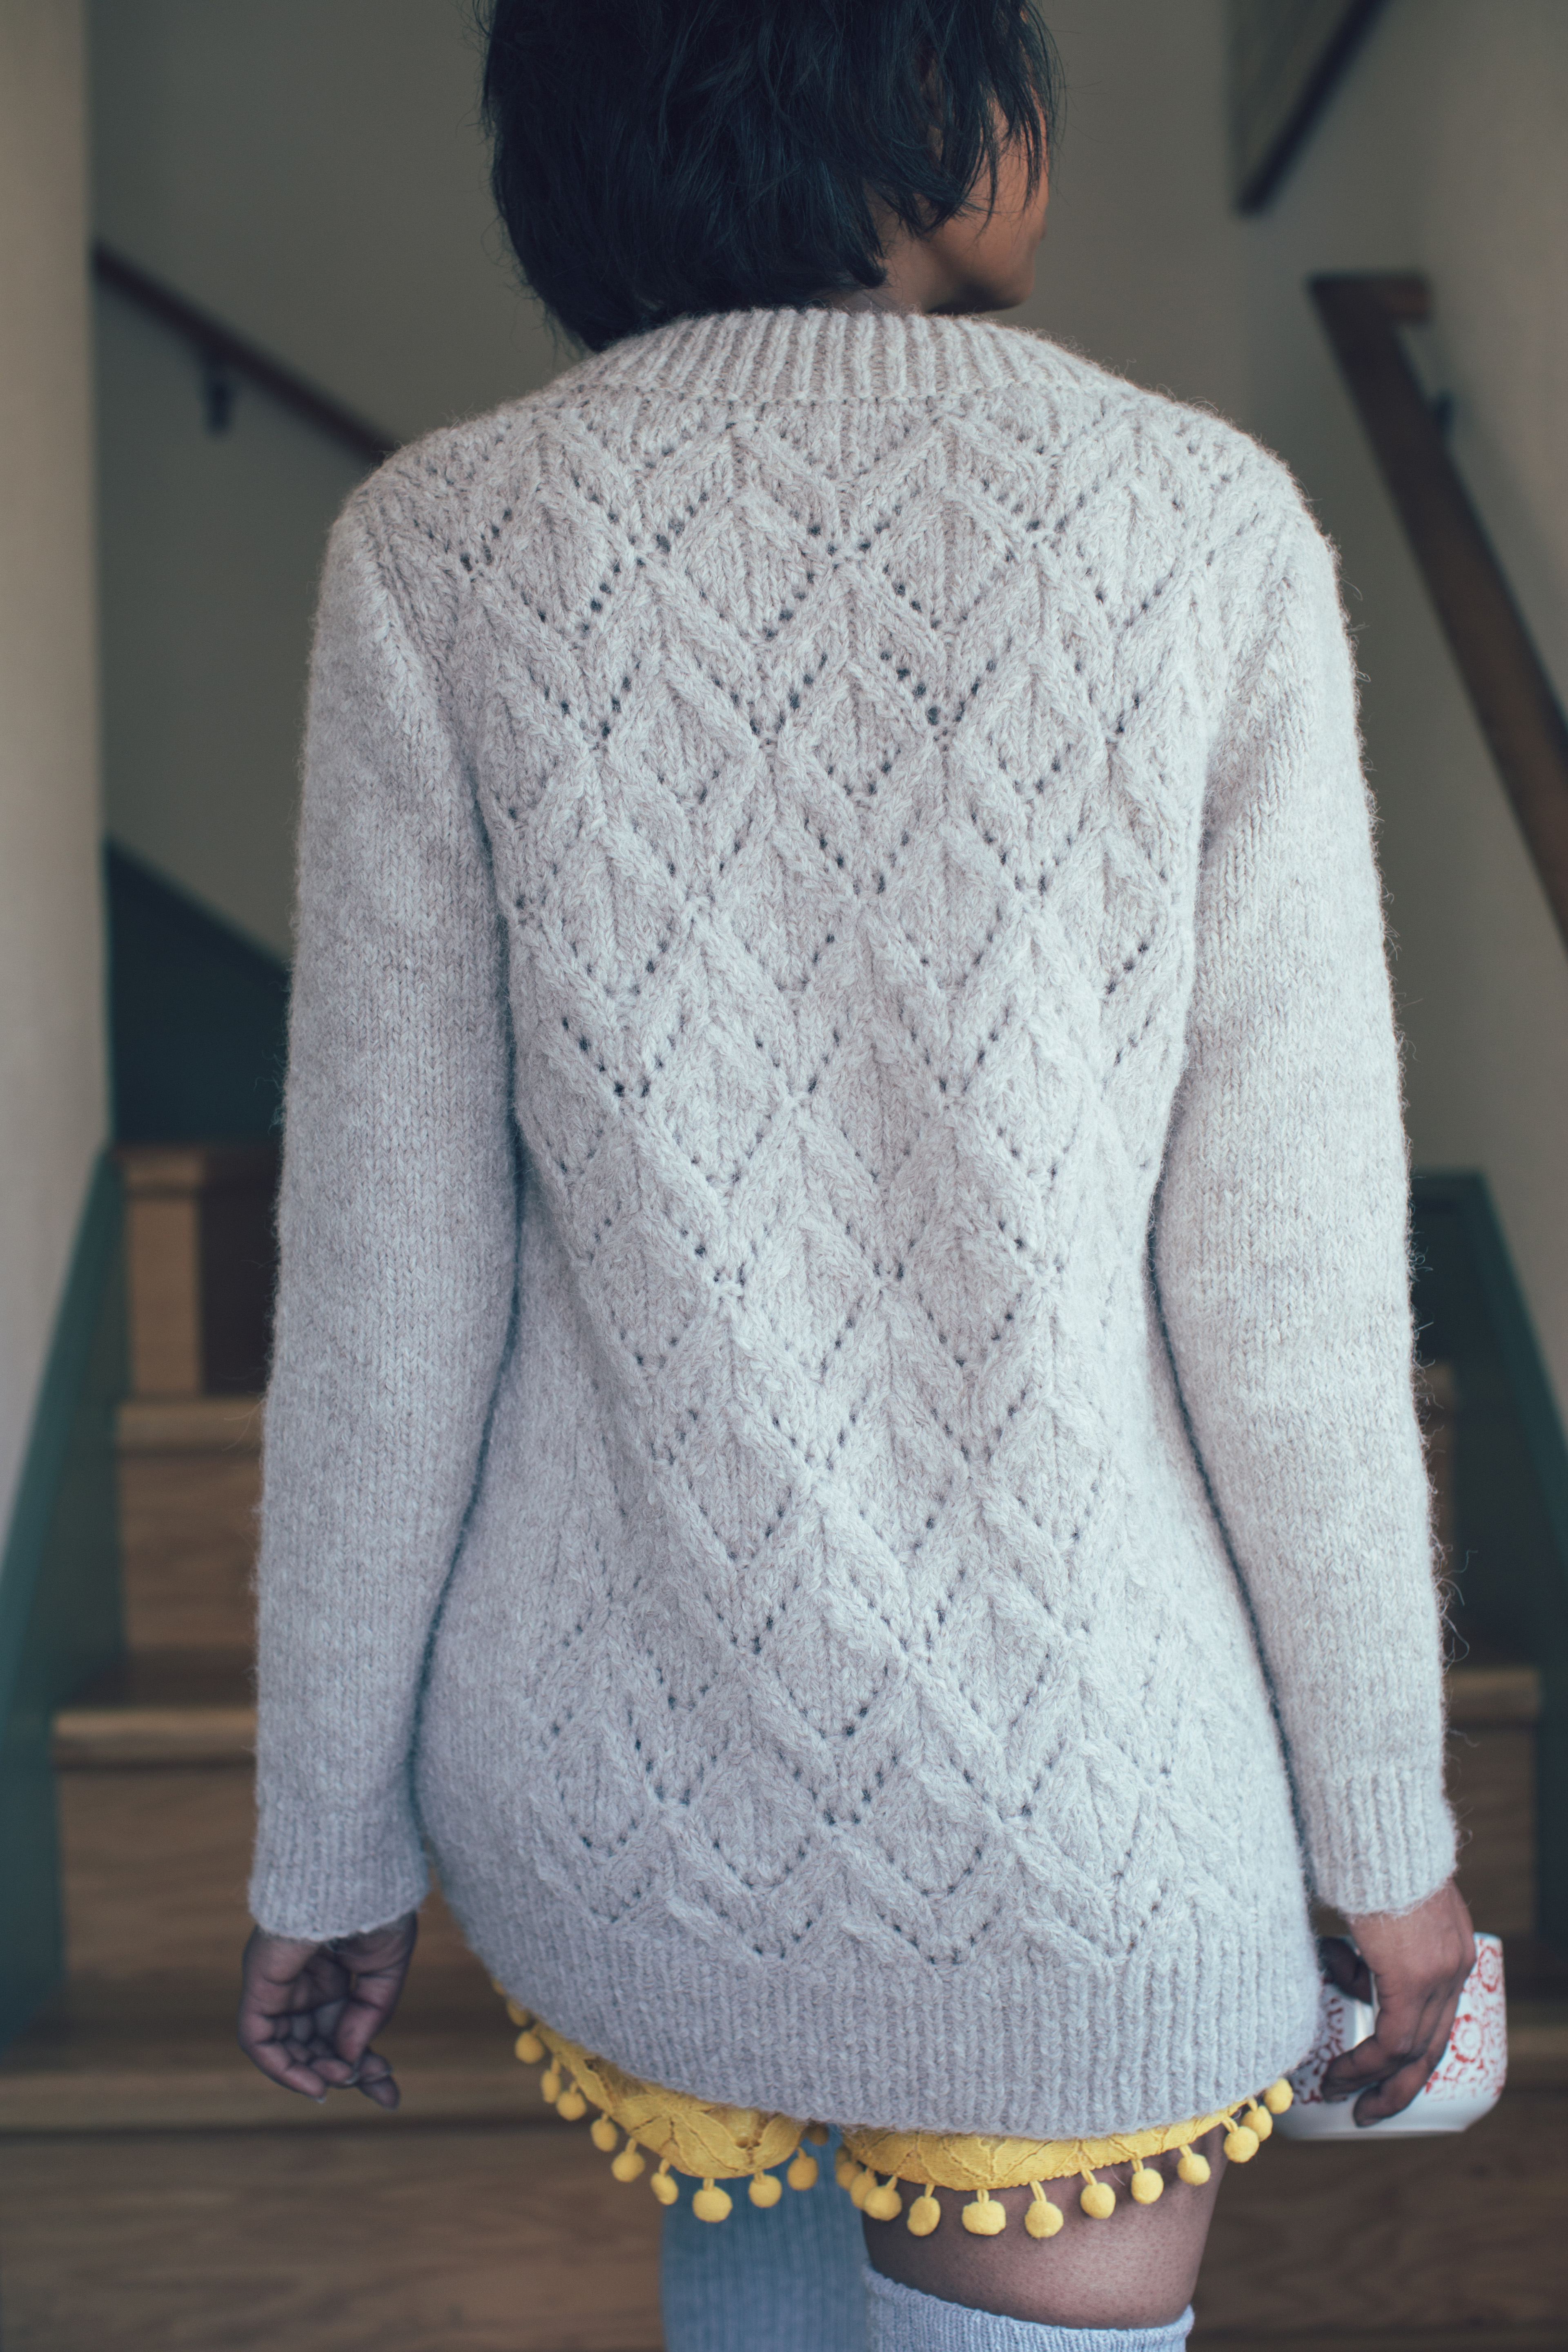 Latte Pullover knitting pattern by Sarah Solomon from knitscene winter 2016